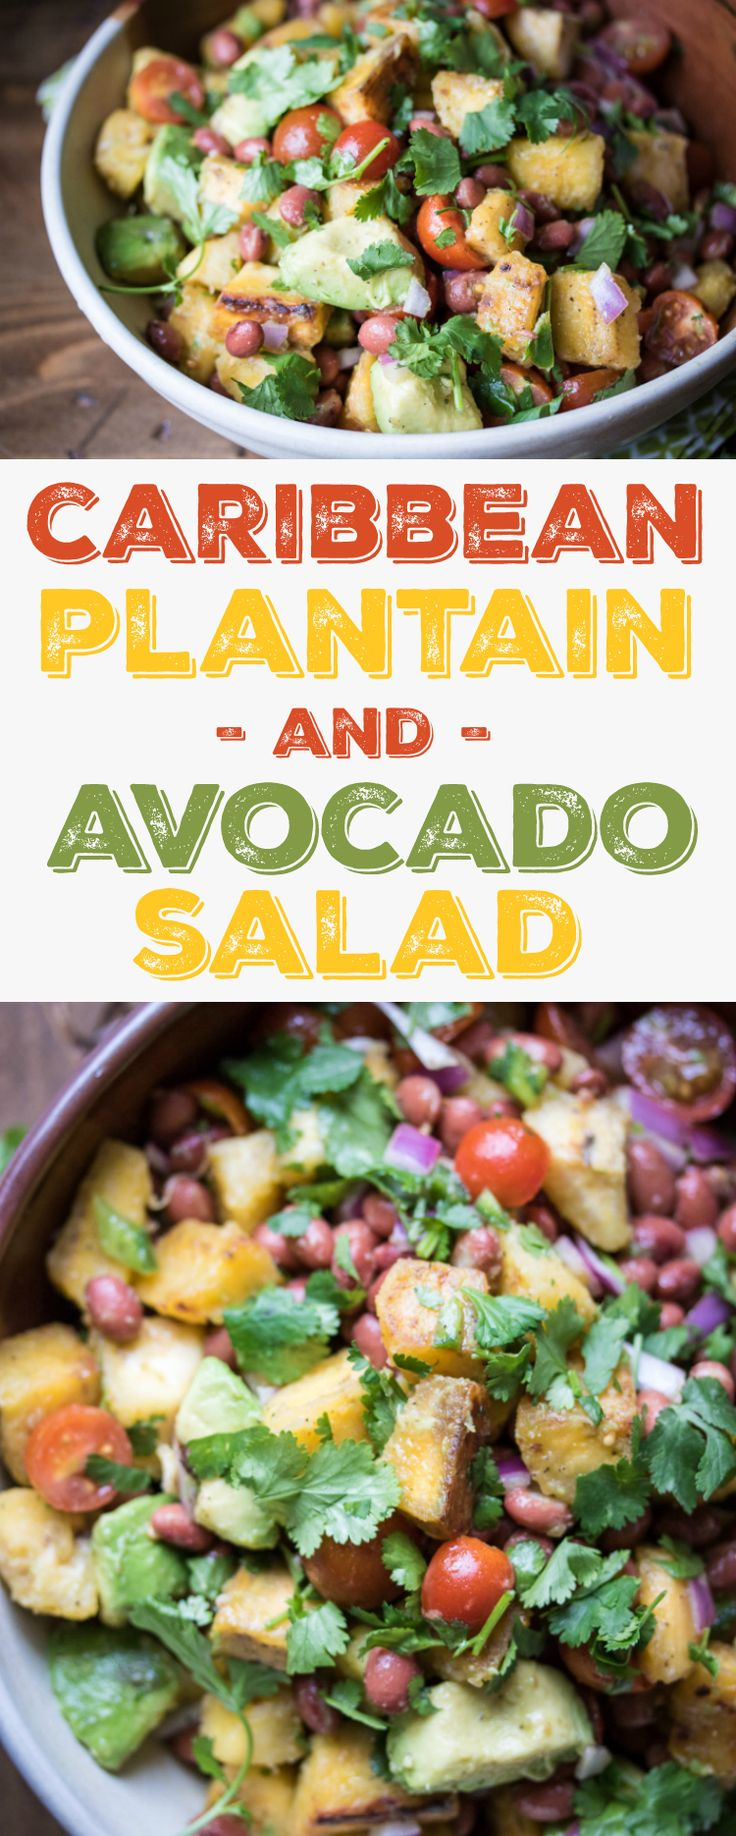 This Caribbean-style salad of fried plantains, avocado, red beans and tomatoes is a vacation-worthy dish!